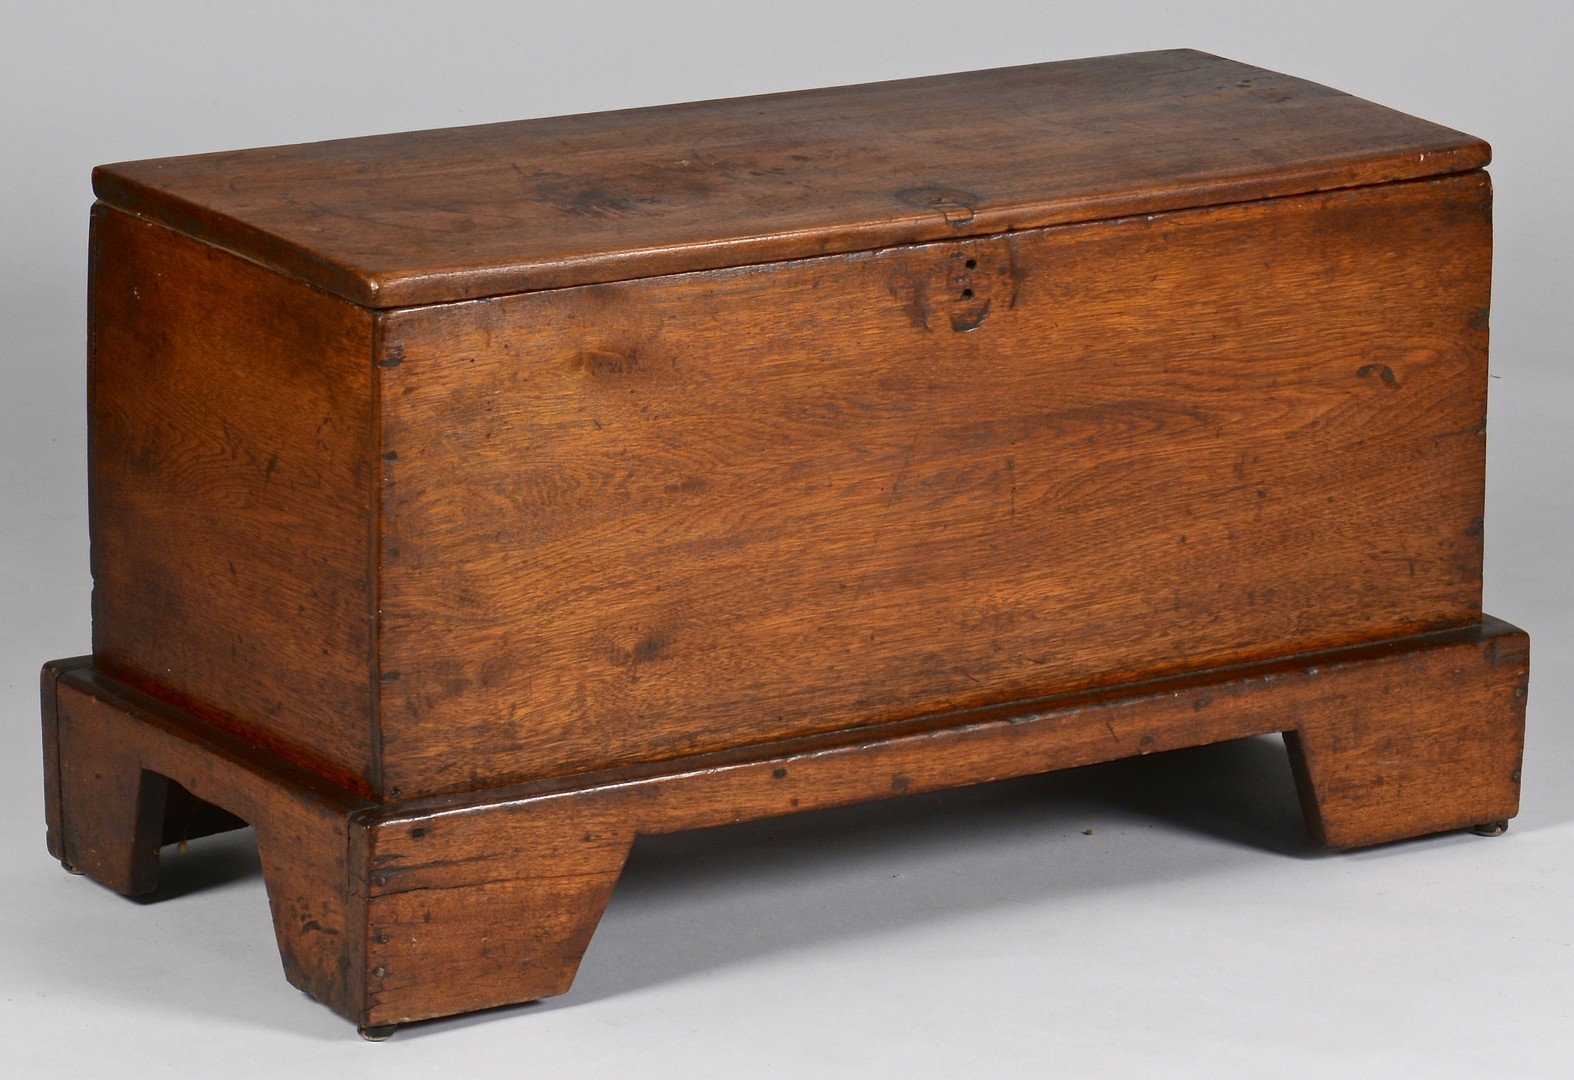 Lot 297: Group of 2 East TN Blanket Chests